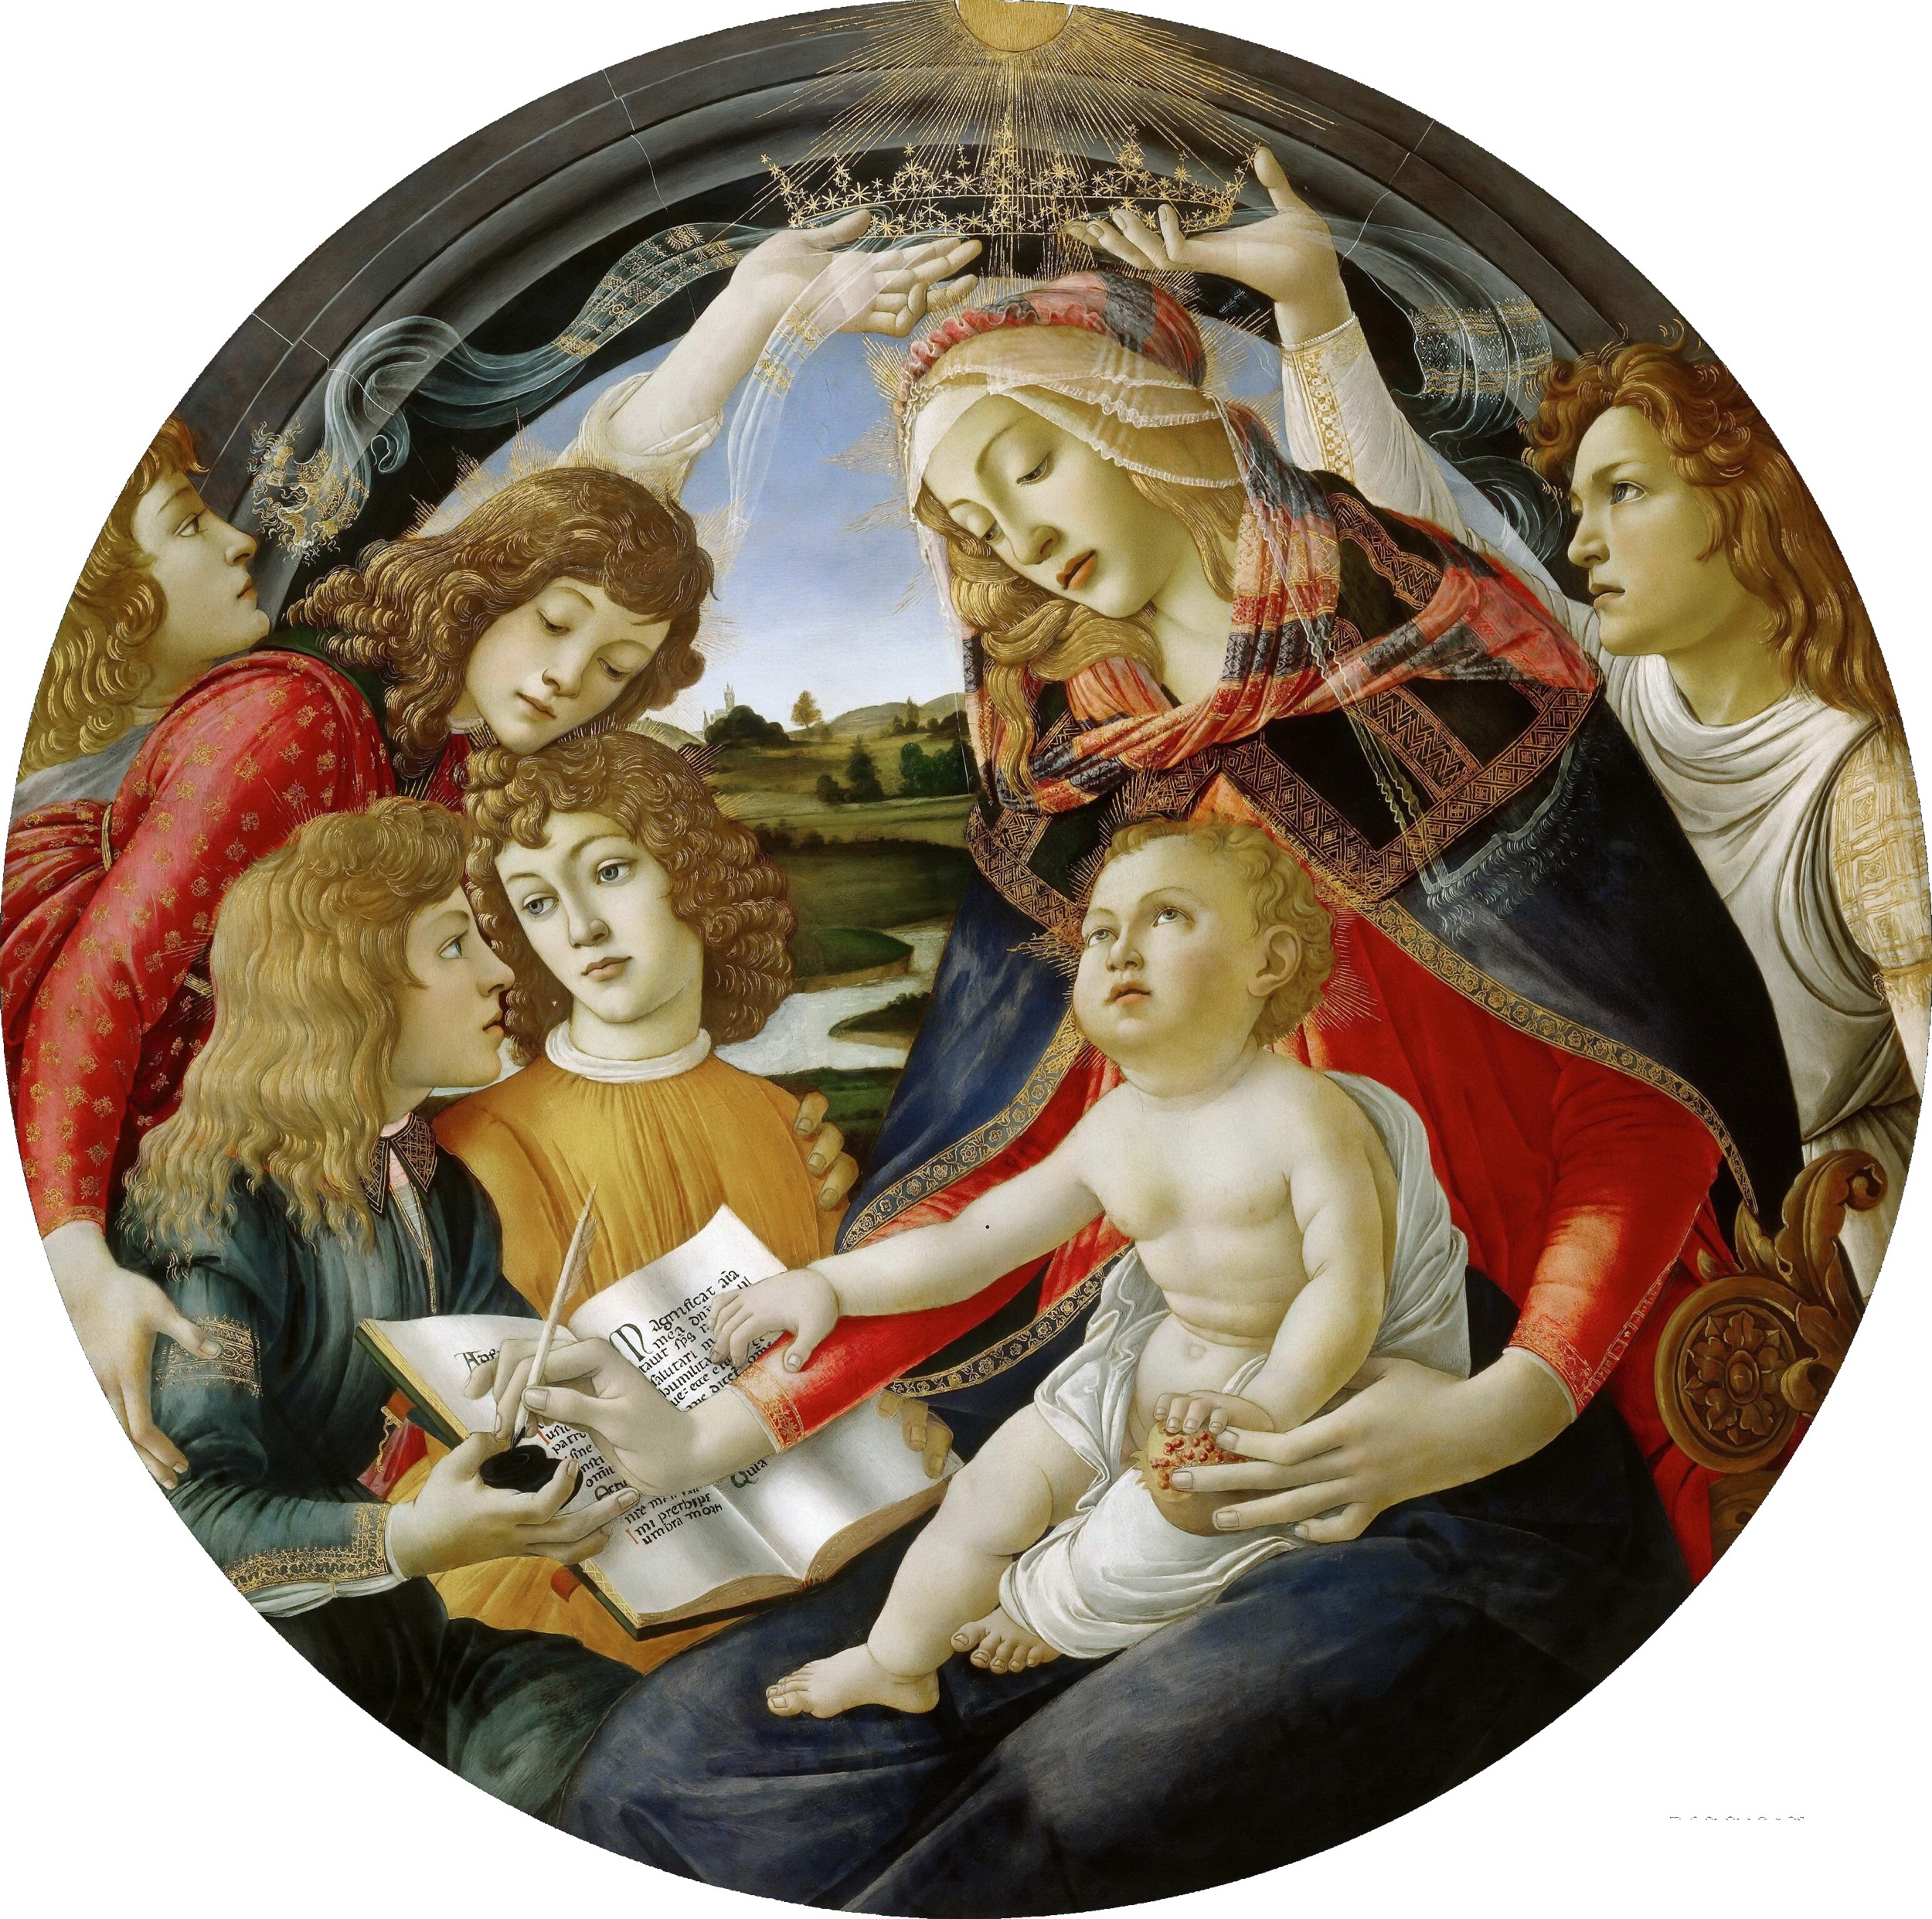 The Madonna of the Magnificat by Sandro Botticelli. Date: 1483. This work of art is in the public domain.